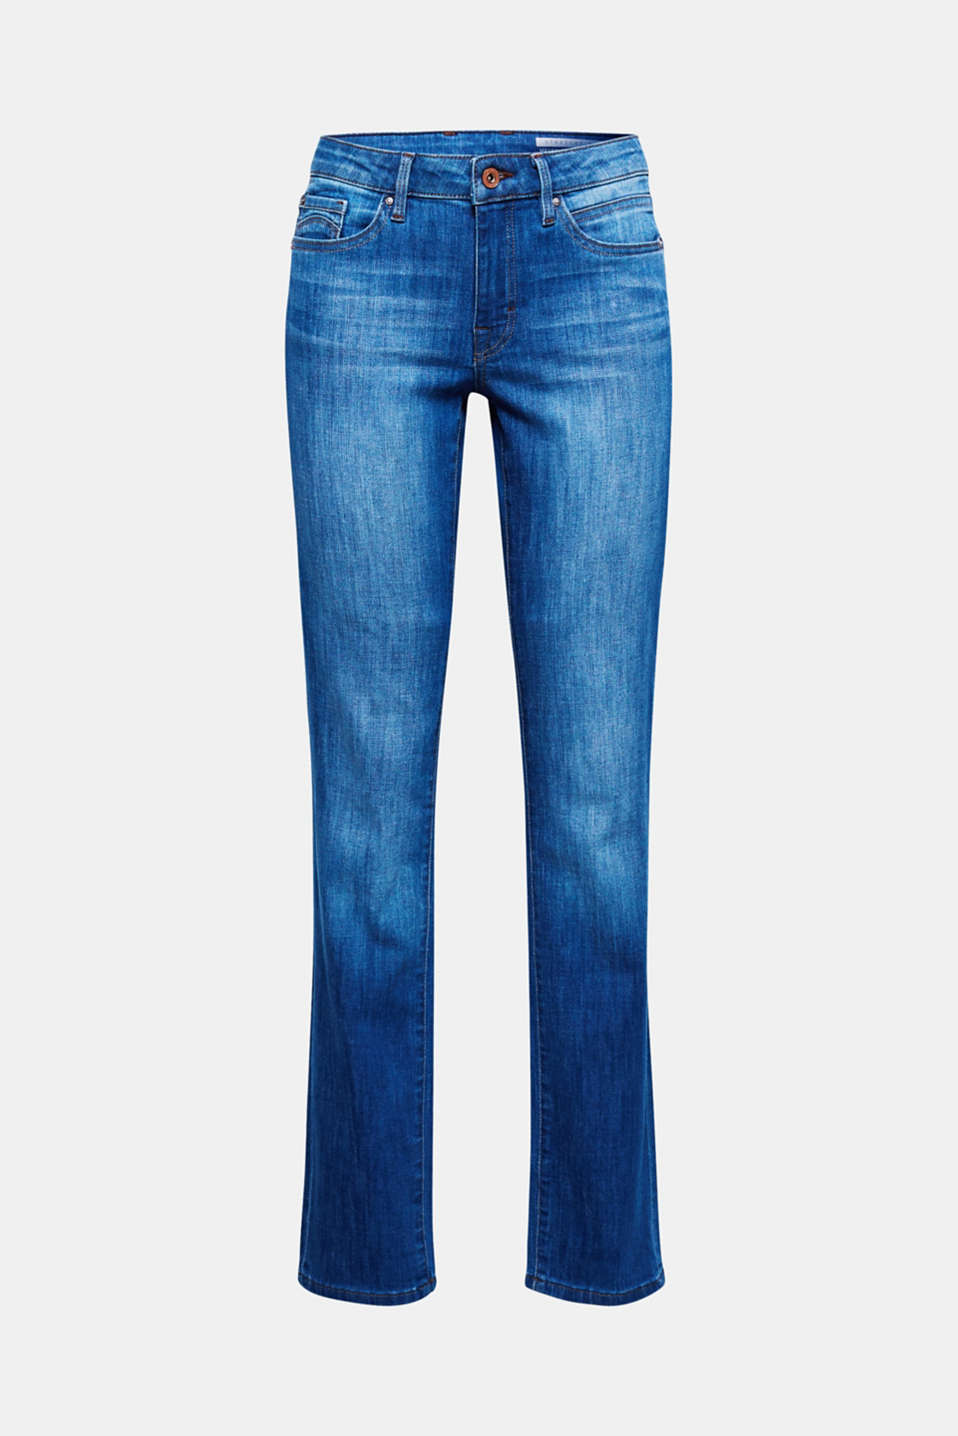 These casual, garment-washed stretch jeans with flap pockets on the seat is a cool basic piece.